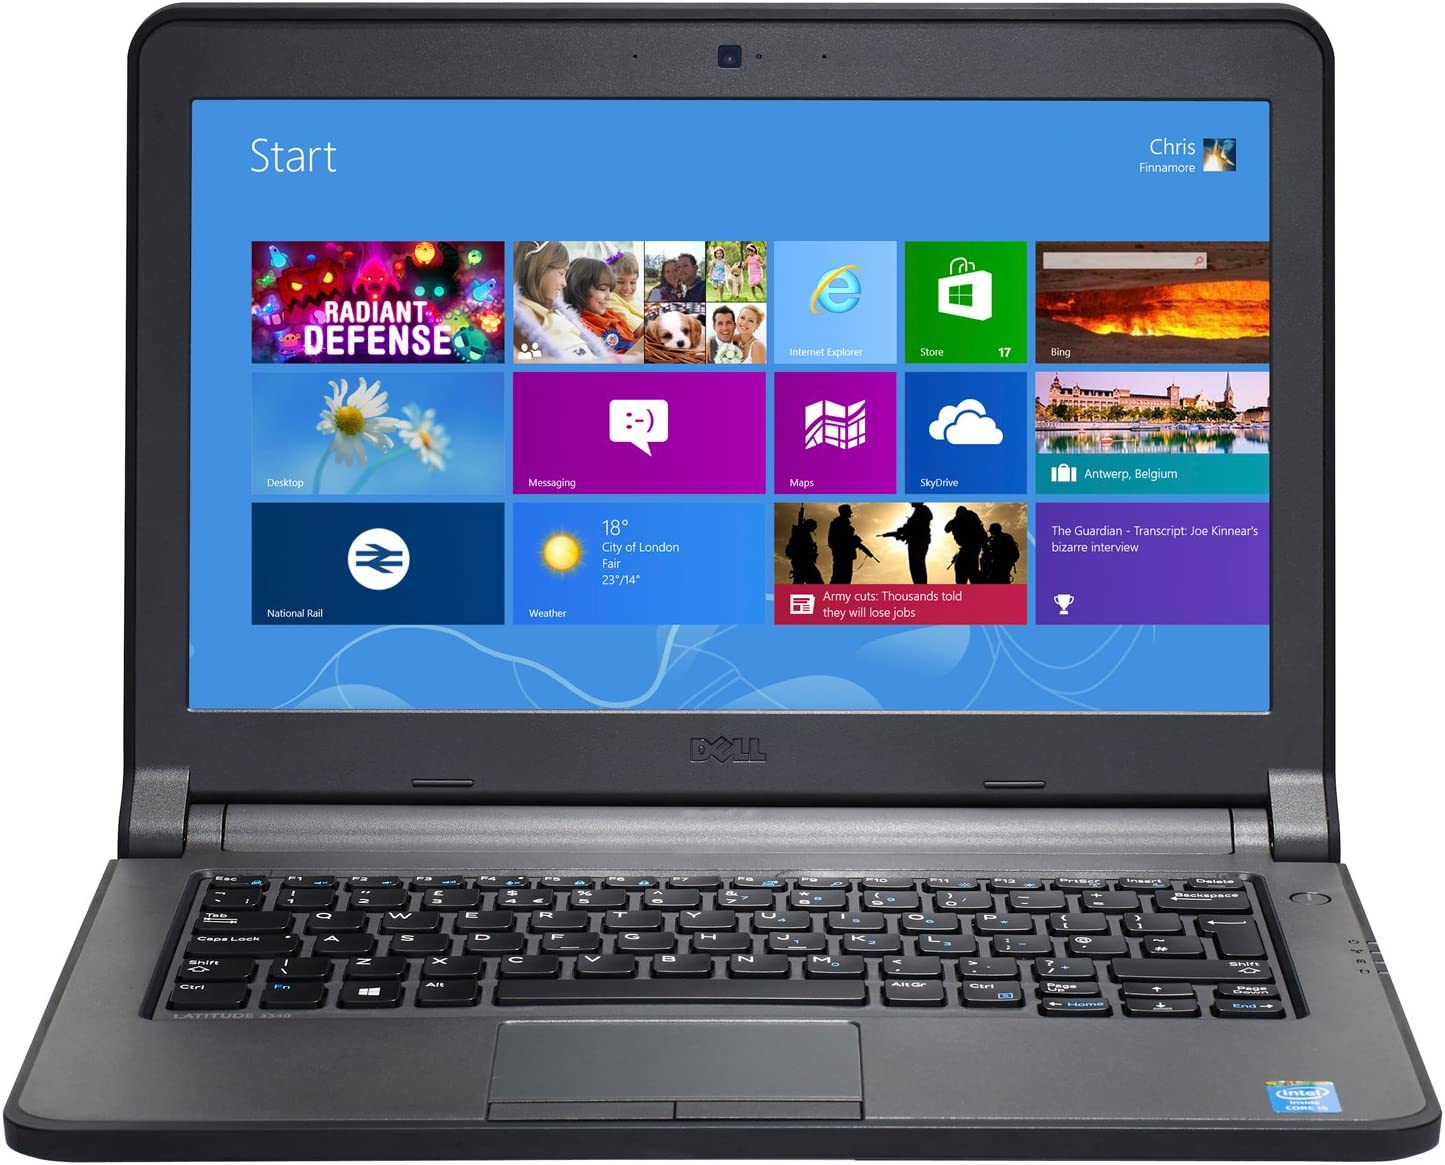 Dell Latitude 3340 13in HD LED Backlit High Performance Laptop Computer, Intel Core i5-4200U up to 2.6GHz, 8GB Memory, 500GB HDD, USB 3.0, HDMI, Windows 10 Professional (Renewed)